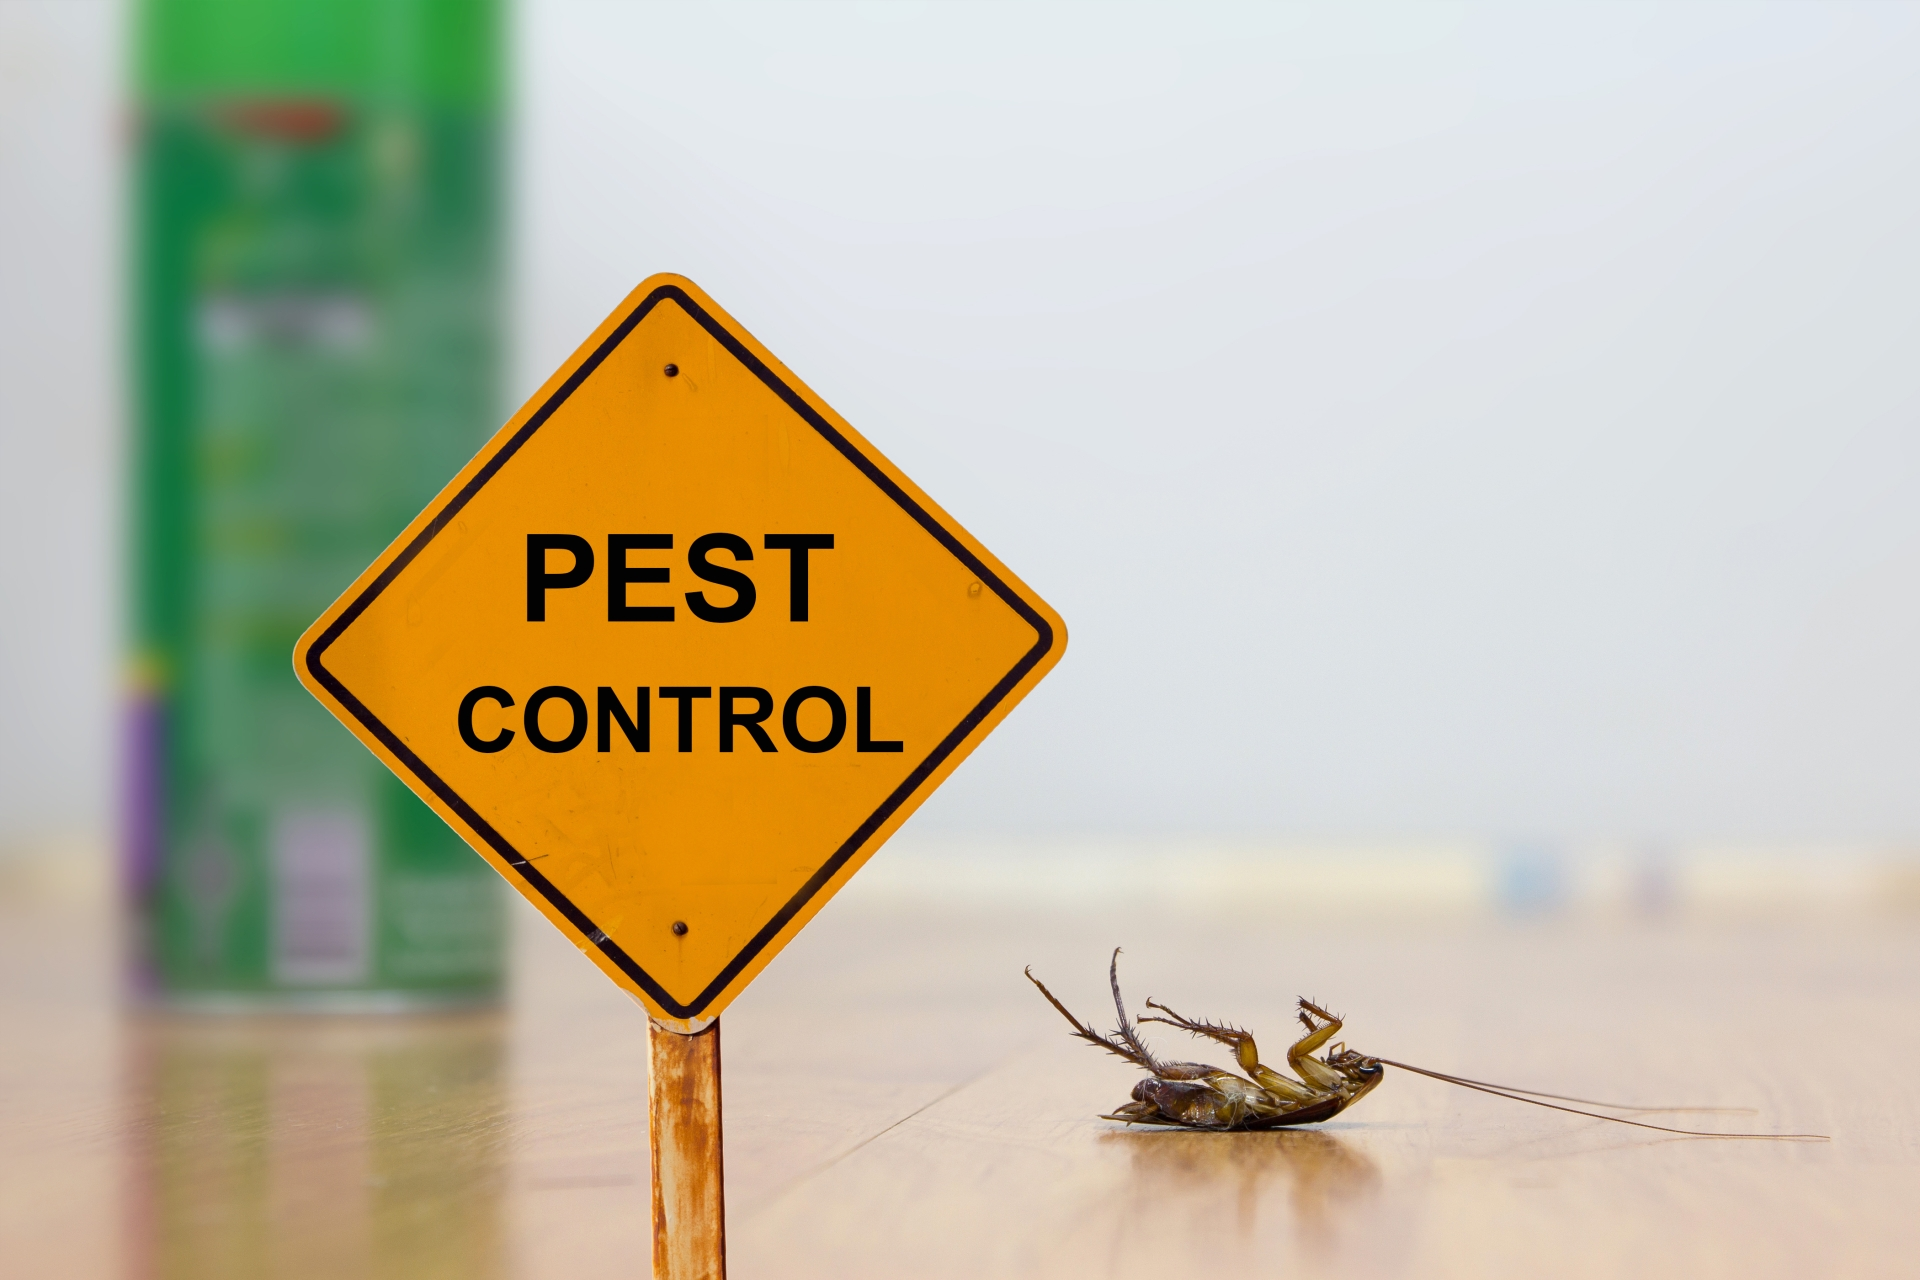 24 Hour Pest Control, Pest Control in Tufnell Park, N19. Call Now 020 8166 9746